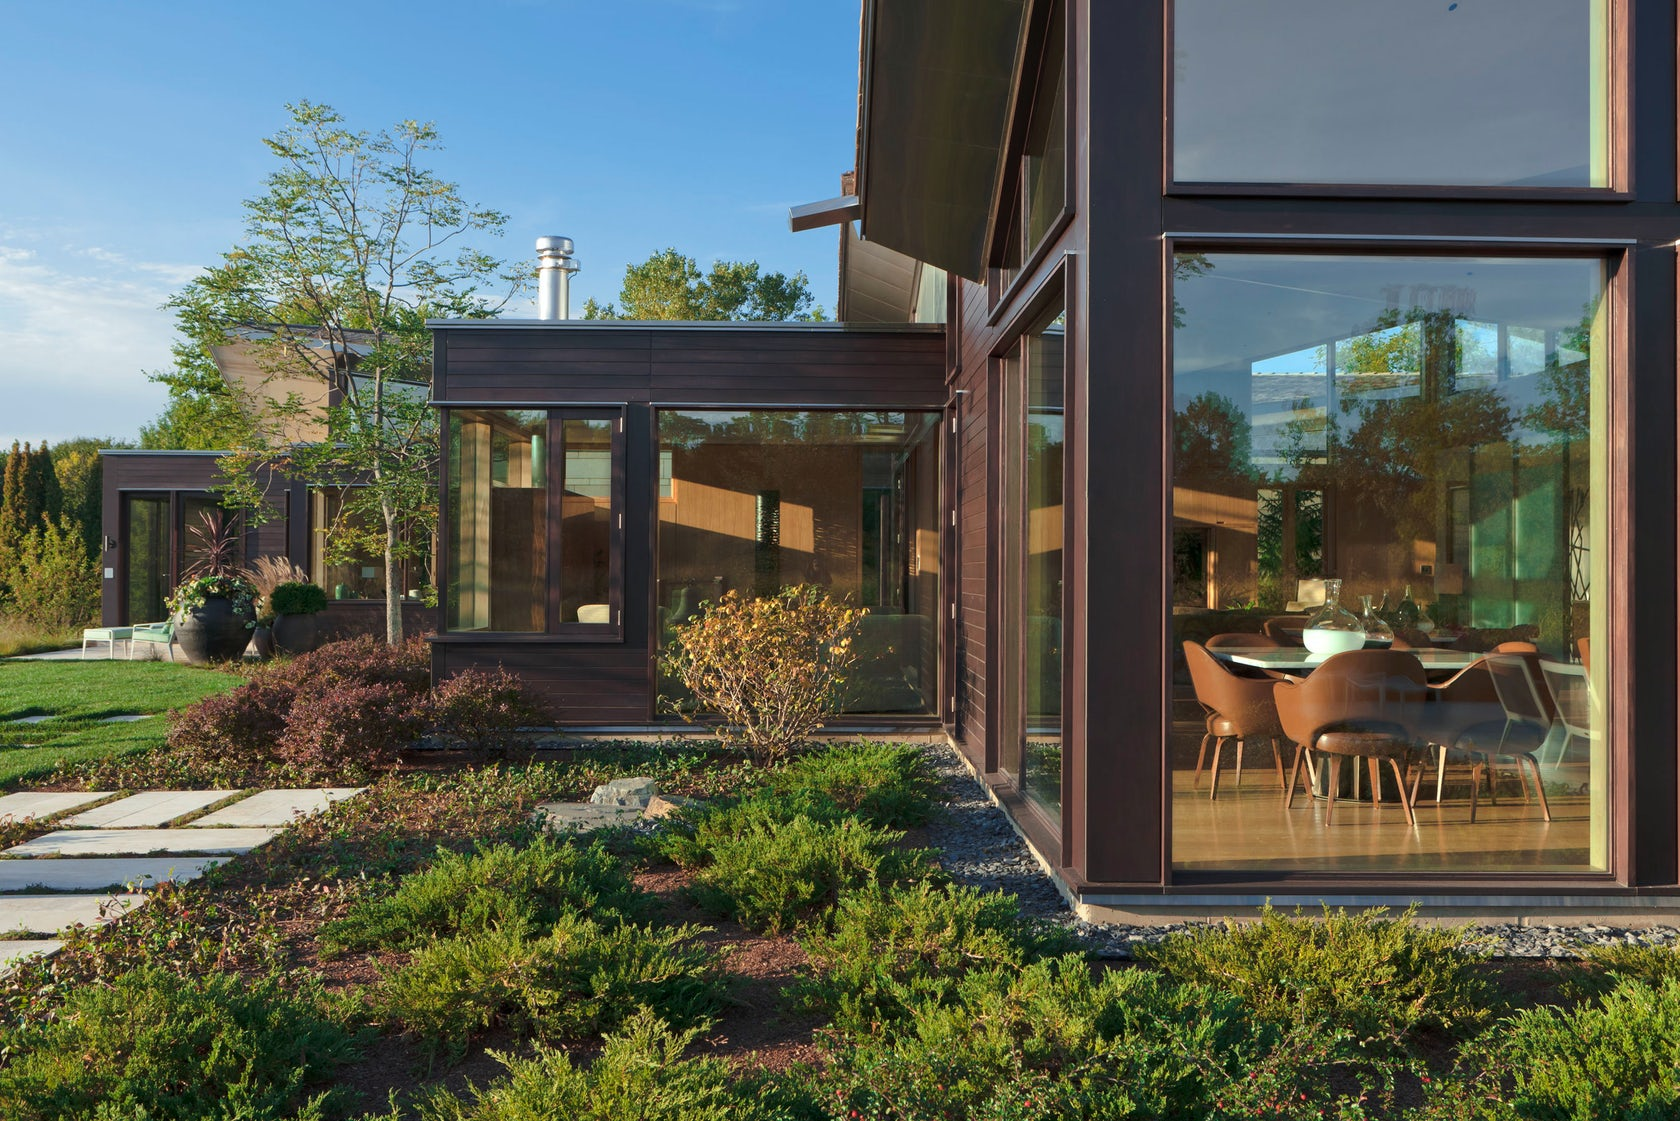 Illinois residence architizer - Residence carmel par dirk denison architects ...